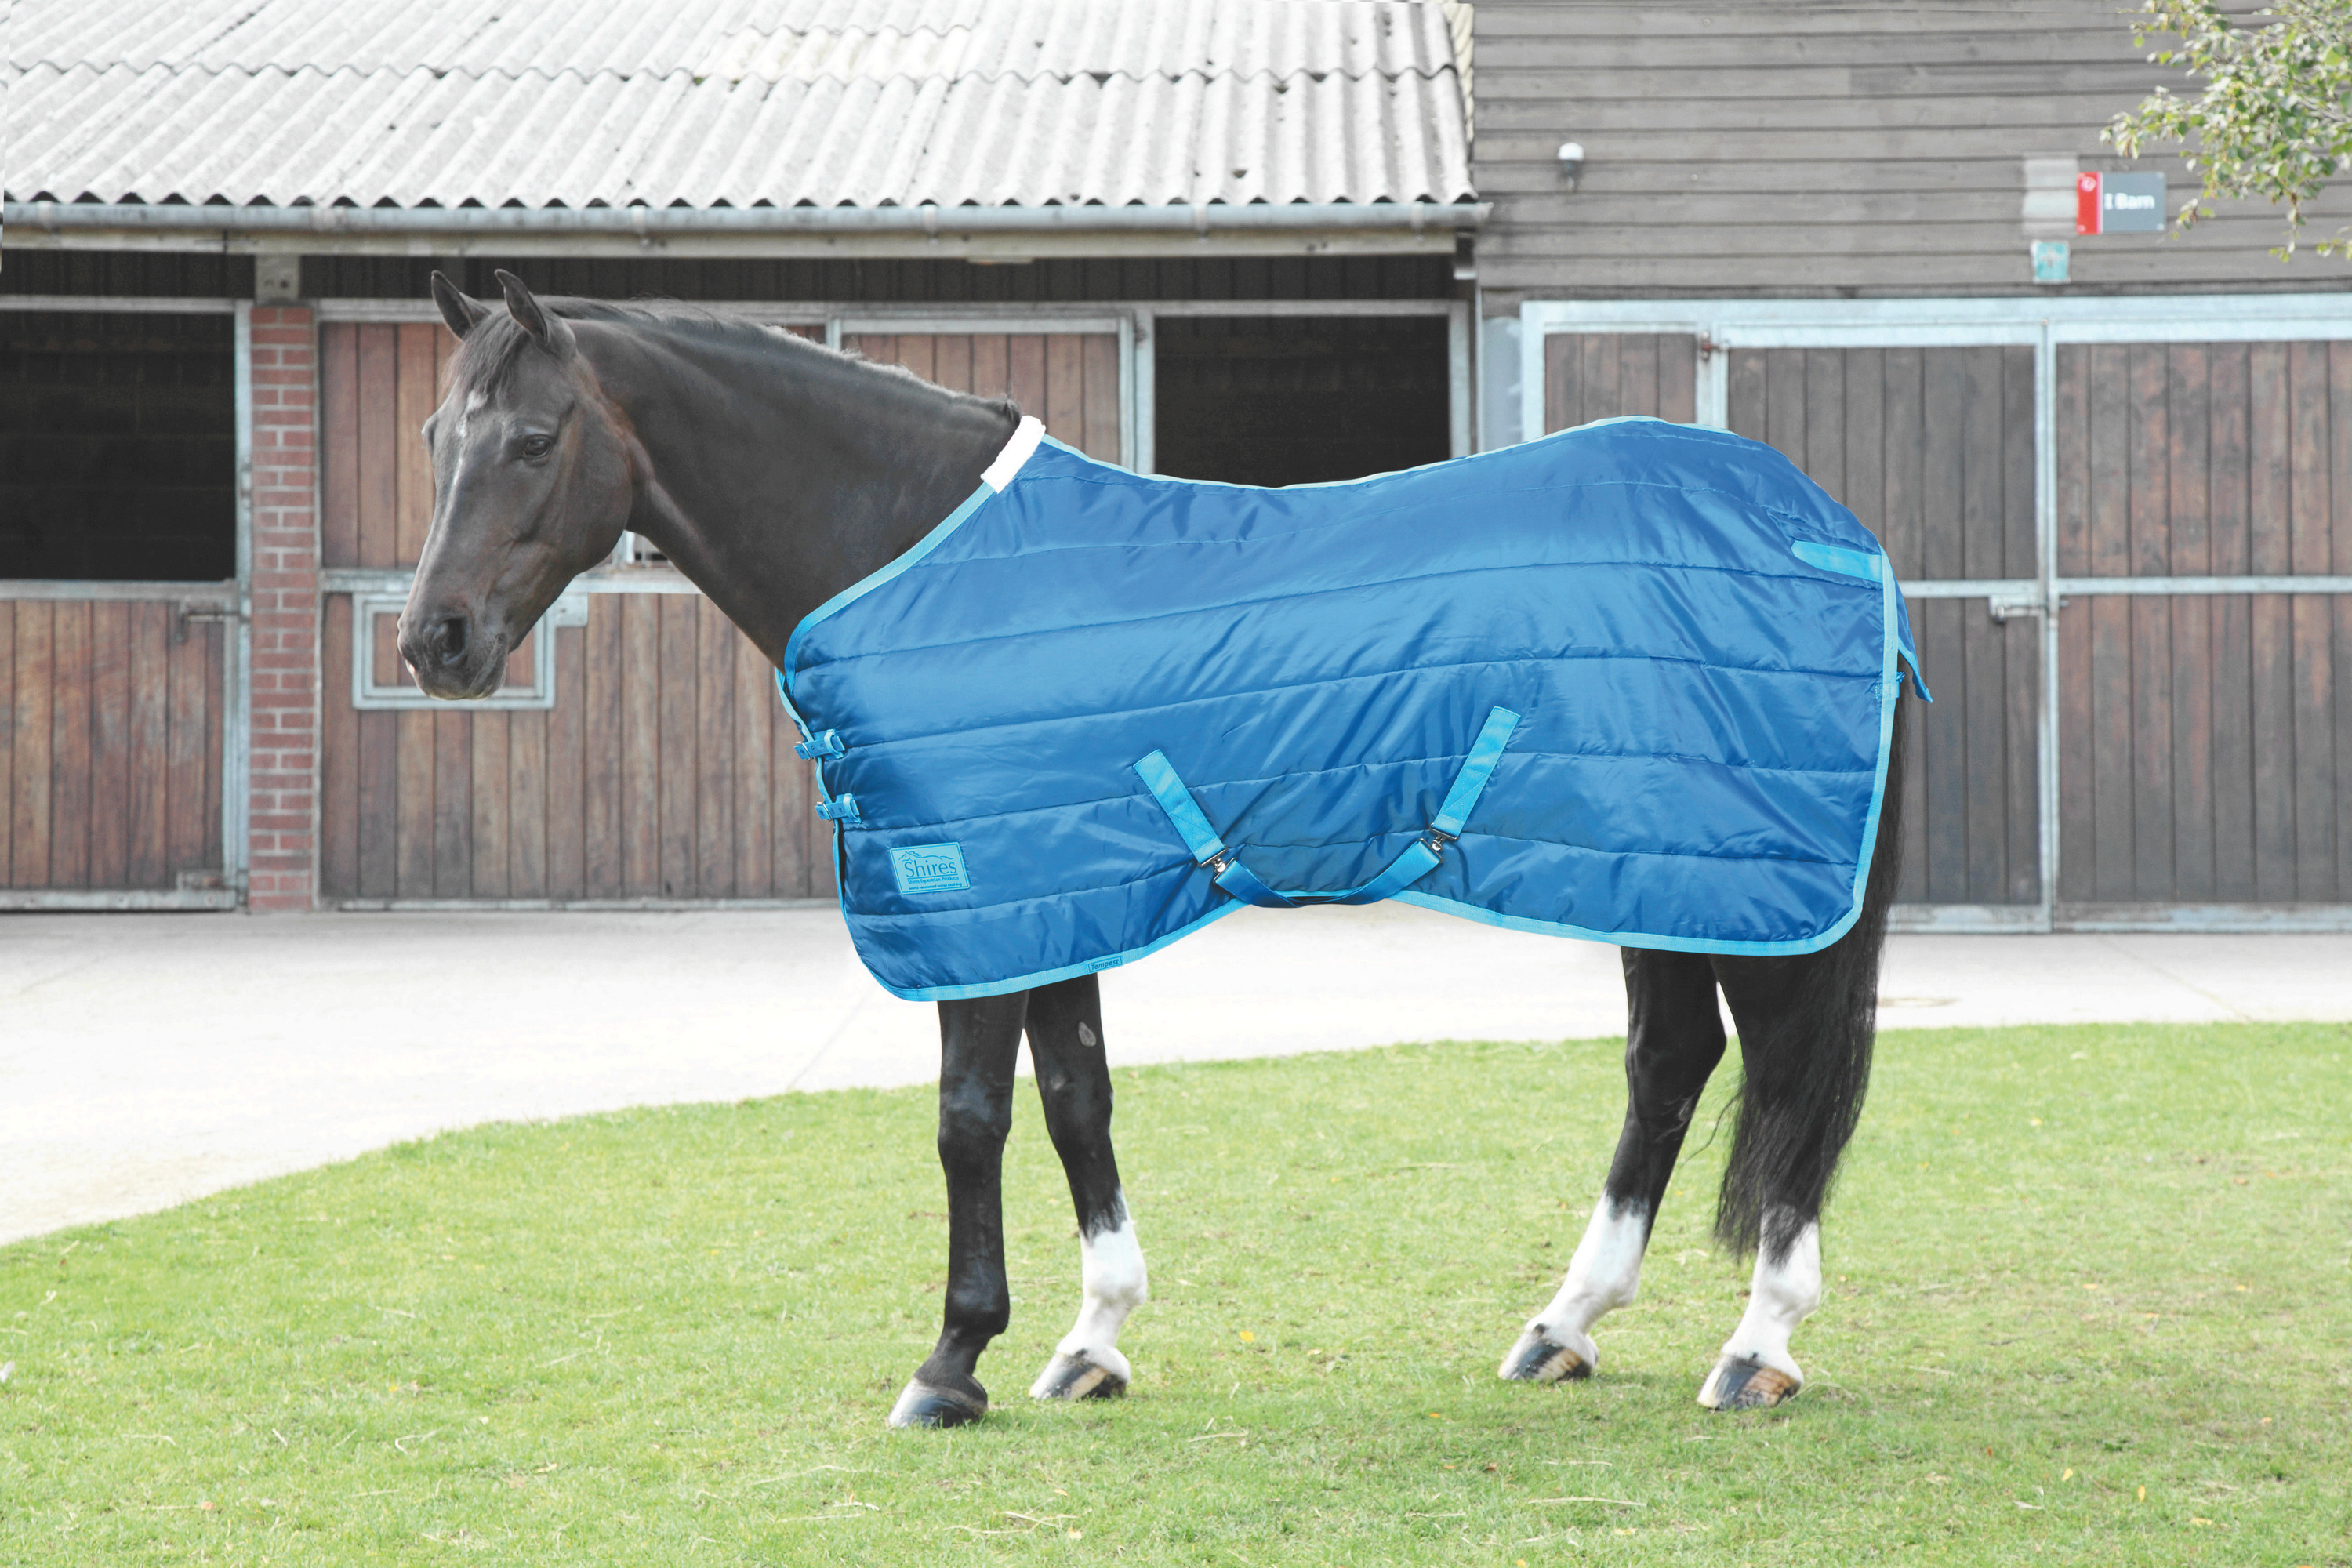 Shires Tempest 100 Lw Stable Blanket